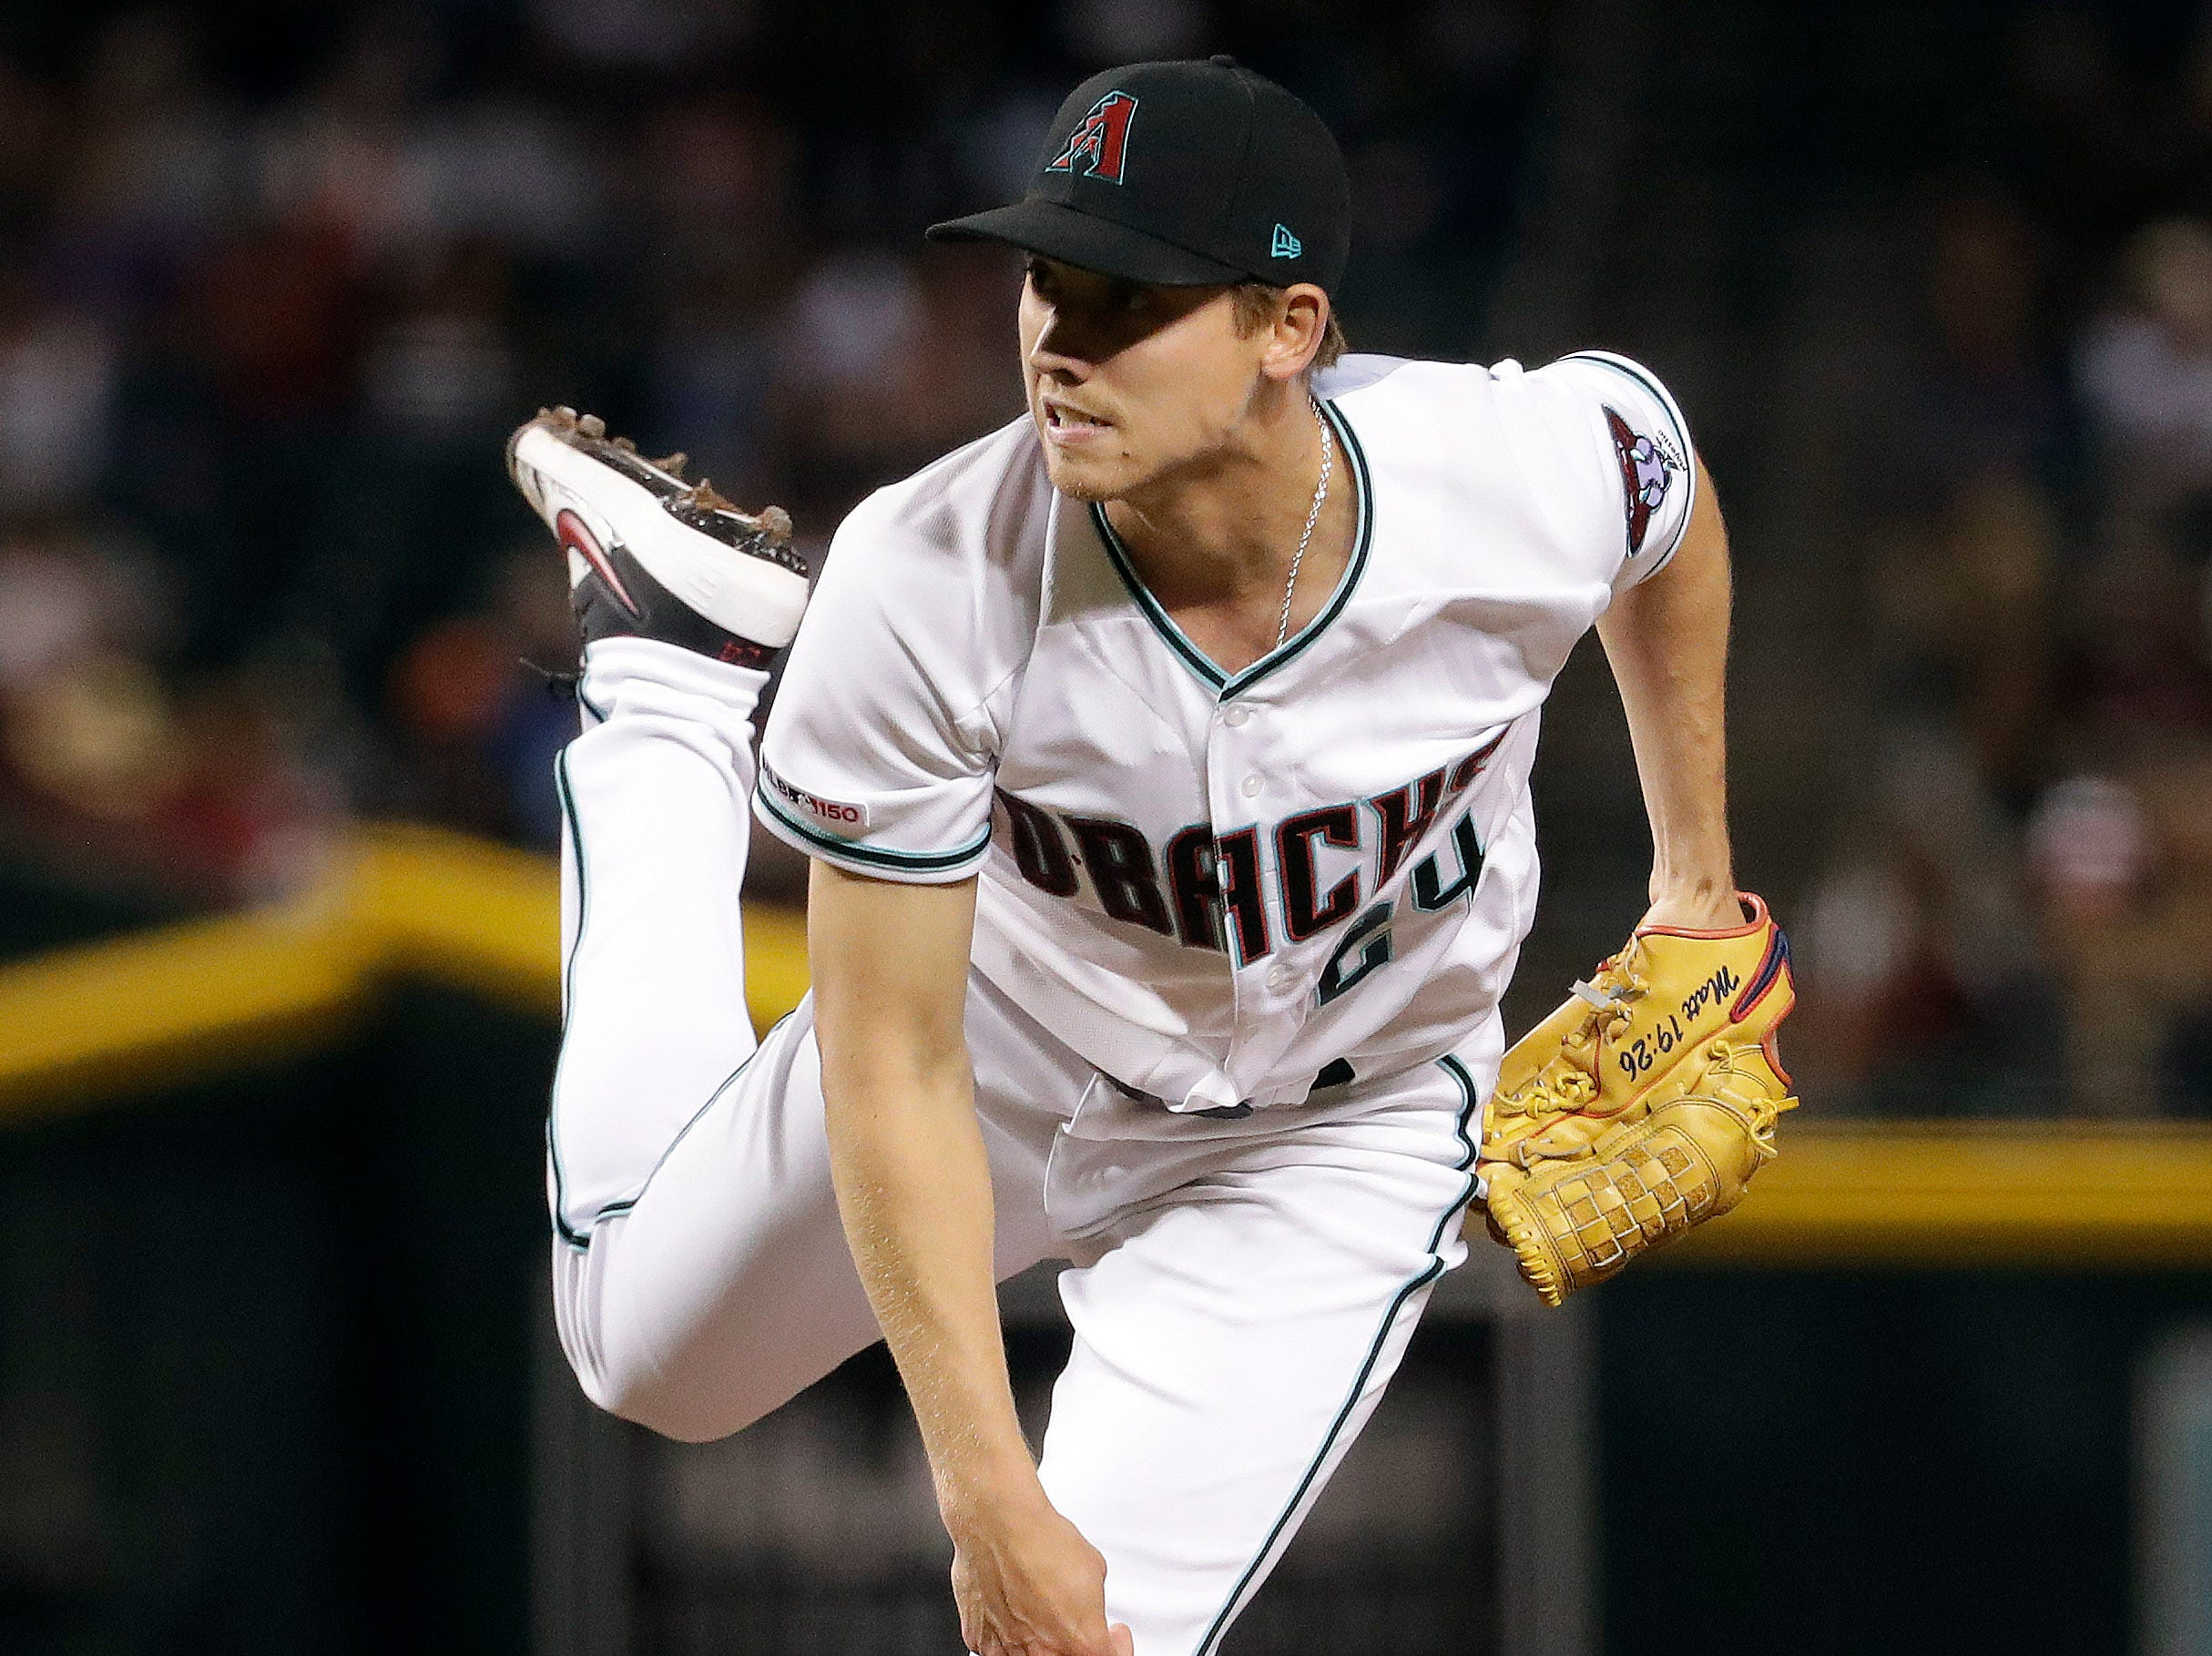 Arizona Diamondbacks starting pitcher Luke Weaver watches a throw to the San Diego Padres during the seventh inning of a baseball game Friday, April 12, 2019, in Phoenix. (AP Photo/Matt York)